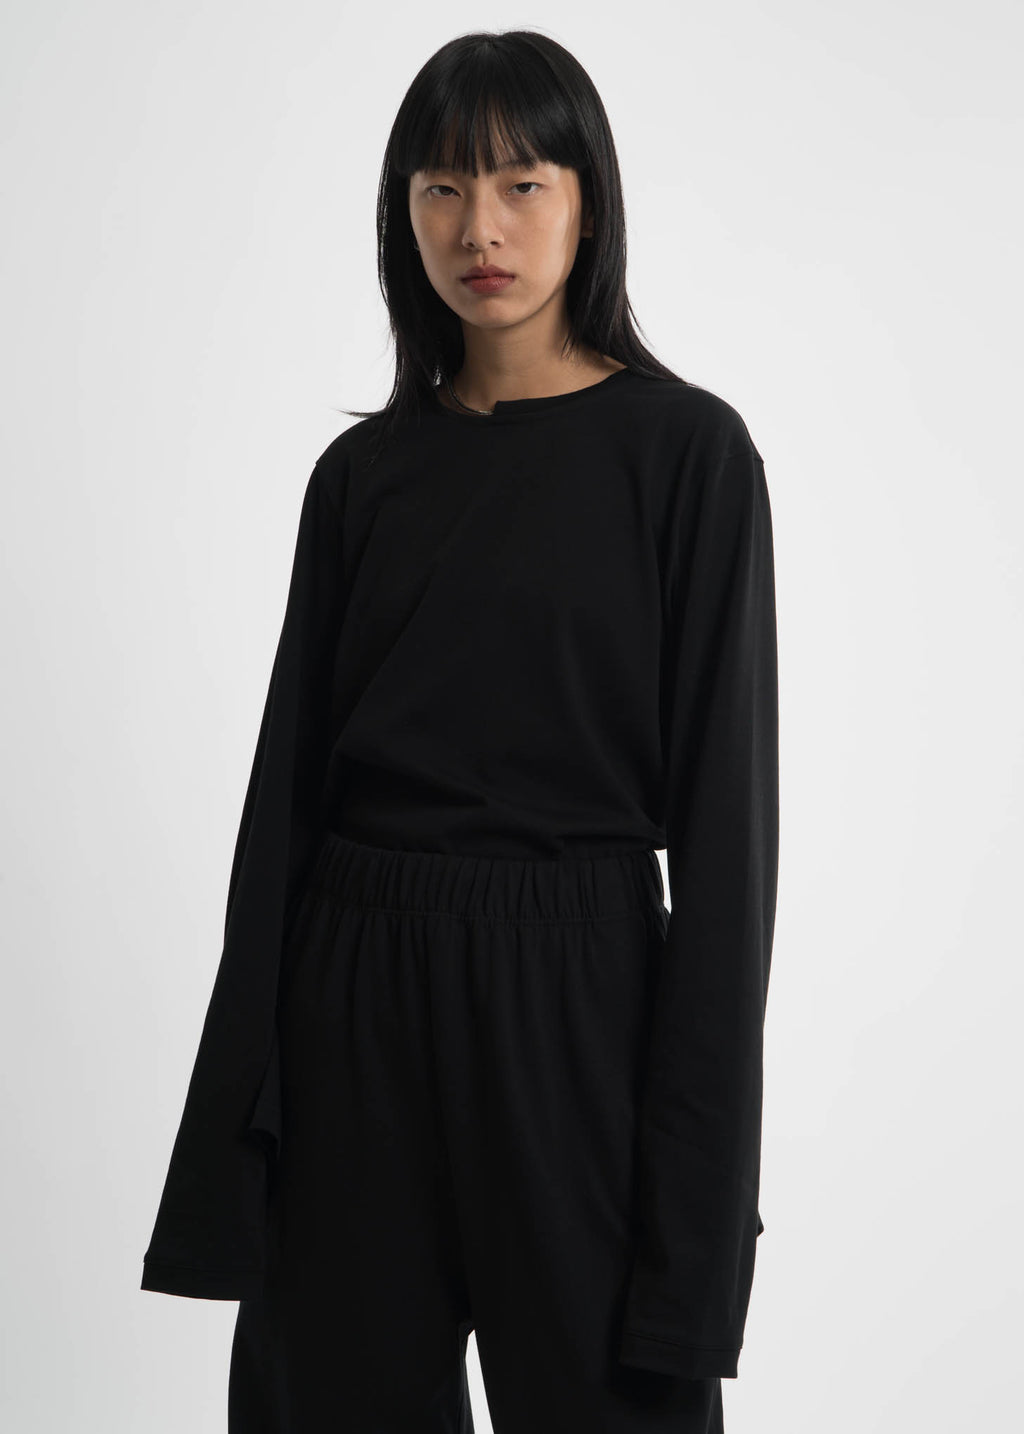 Helmut Lang, Black Necklace Crewneck, 017 Shop